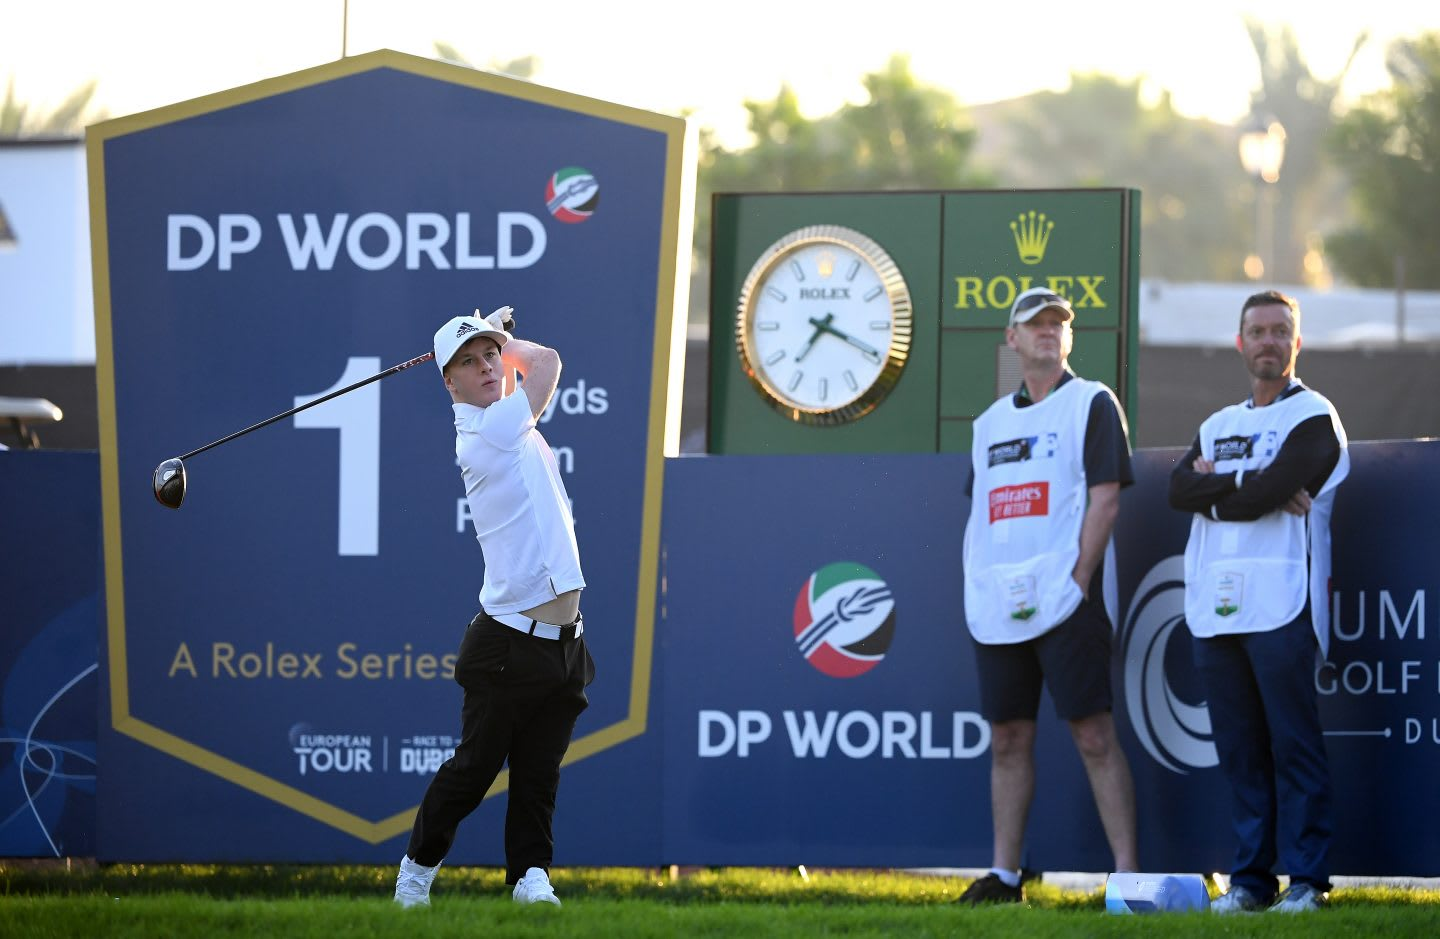 Brendan Lawlor tees off on the 1st hole during Round One of the EDGA Dubai Finale at Jumeirah Golf Estates on November 22, 2019 in Dubai, disability, golfer, sports, adidas, athlete